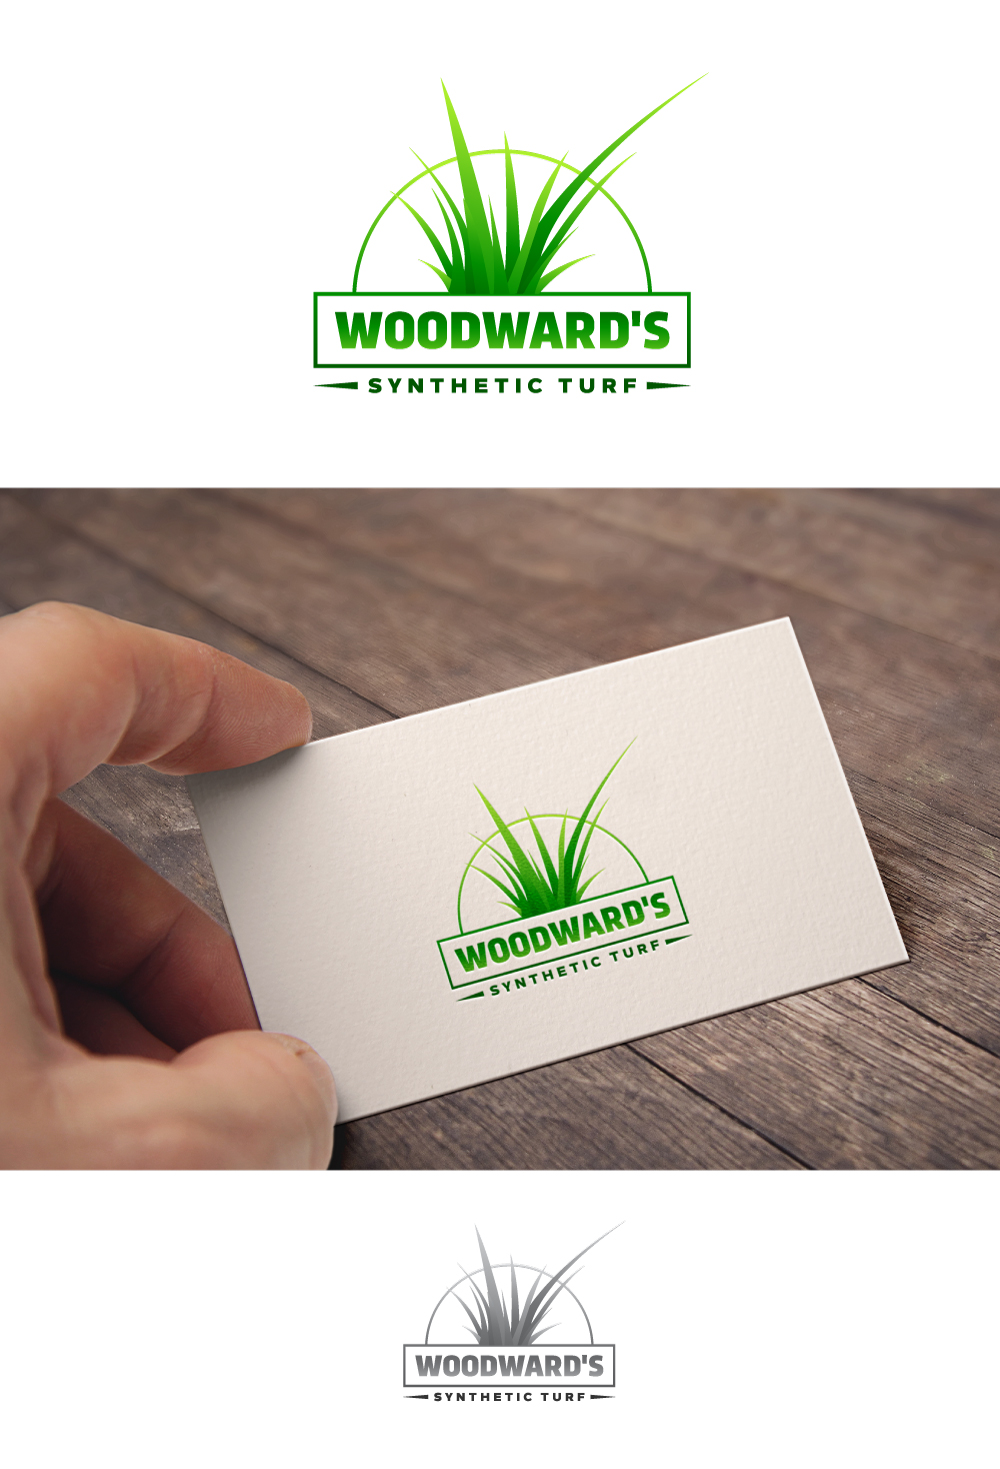 Logo Design by Tauhid Shaikh - Entry No. 63 in the Logo Design Contest Artistic Logo Design for Woodward's Synthetic Turf.